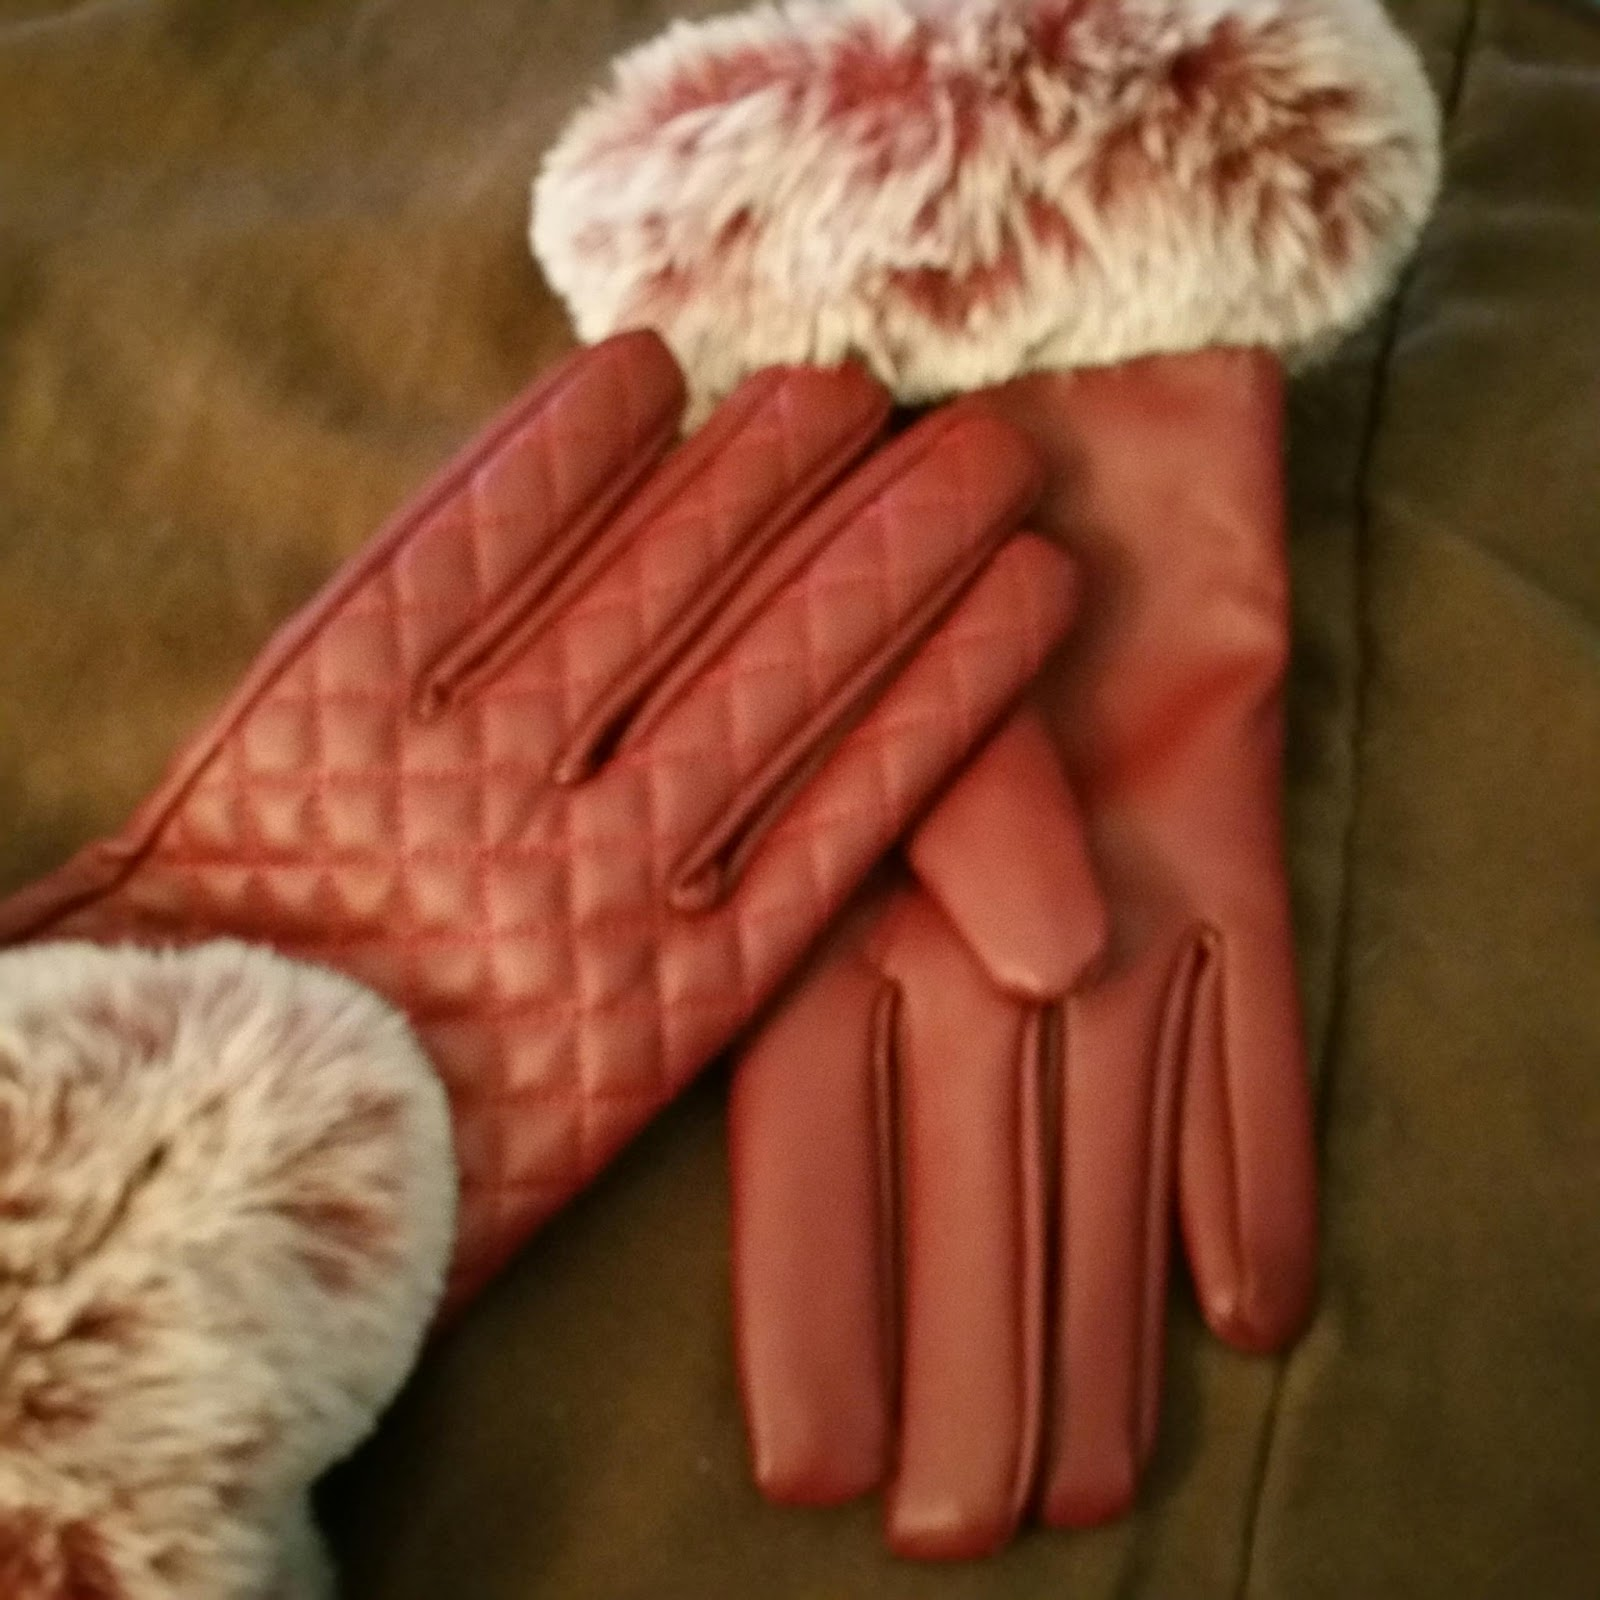 Womens leather gloves reviews - I Have A Couple Of Women S Gloves To Review My First Is The Vbiger Leather Gloves With Texting Touch Screen These Gloves Are Beautiful And Very Warm